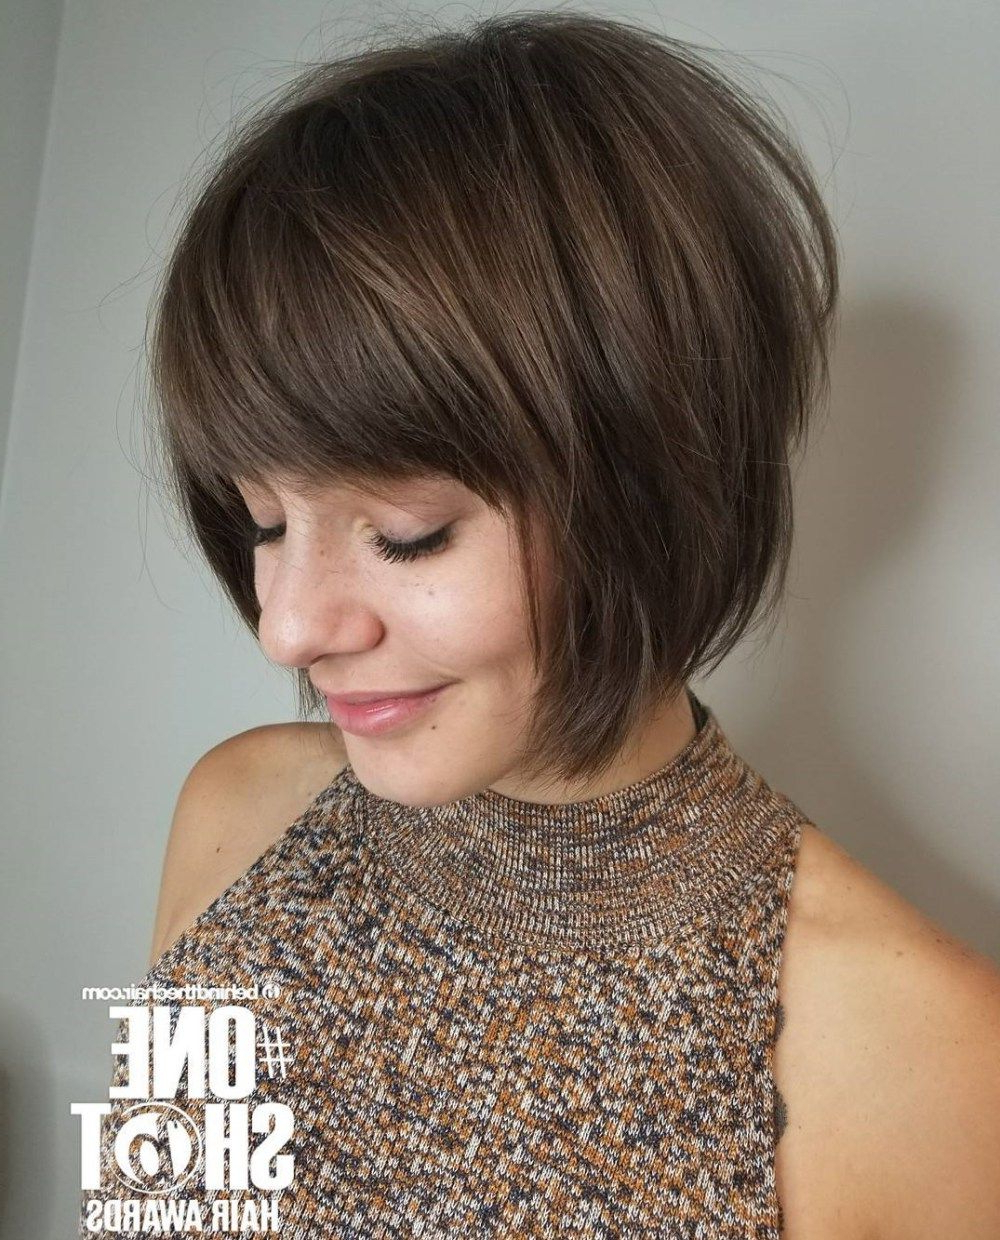 50 Classy Short Bob Haircuts And Hairstyles With Bangs In 2019 Pertaining To Current Bob Hairstyles With Full Fringe (Gallery 4 of 20)